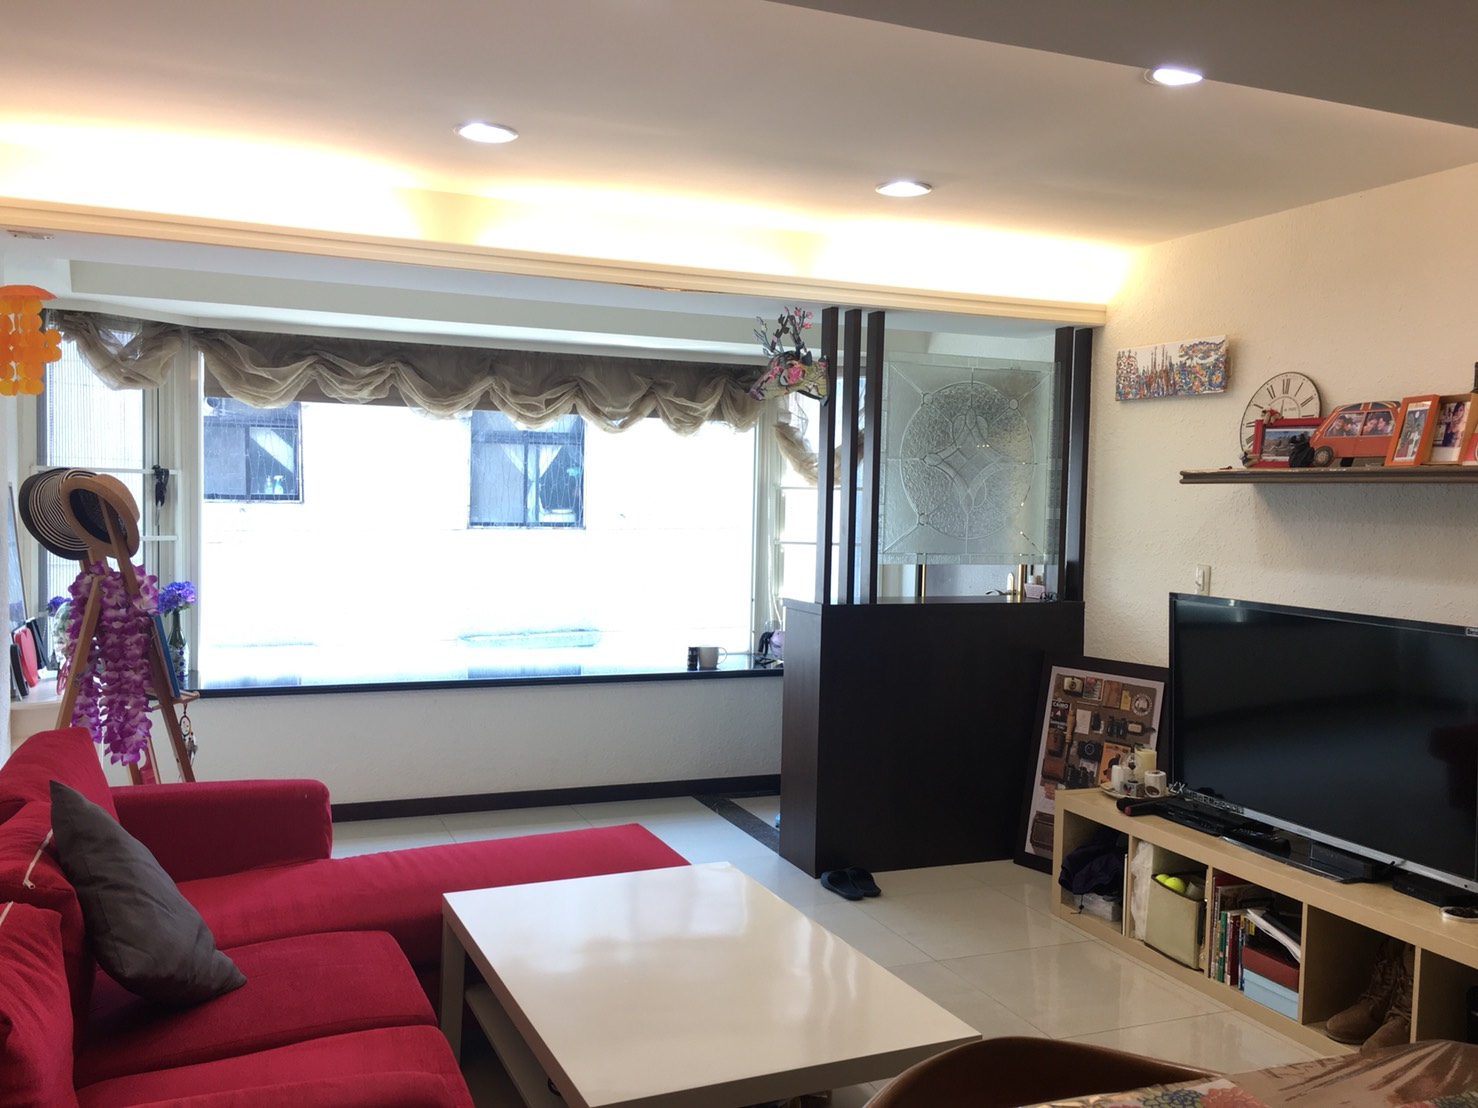 Teaching English and Living in Taiwan Apartments to Share, looking for single female rommate image